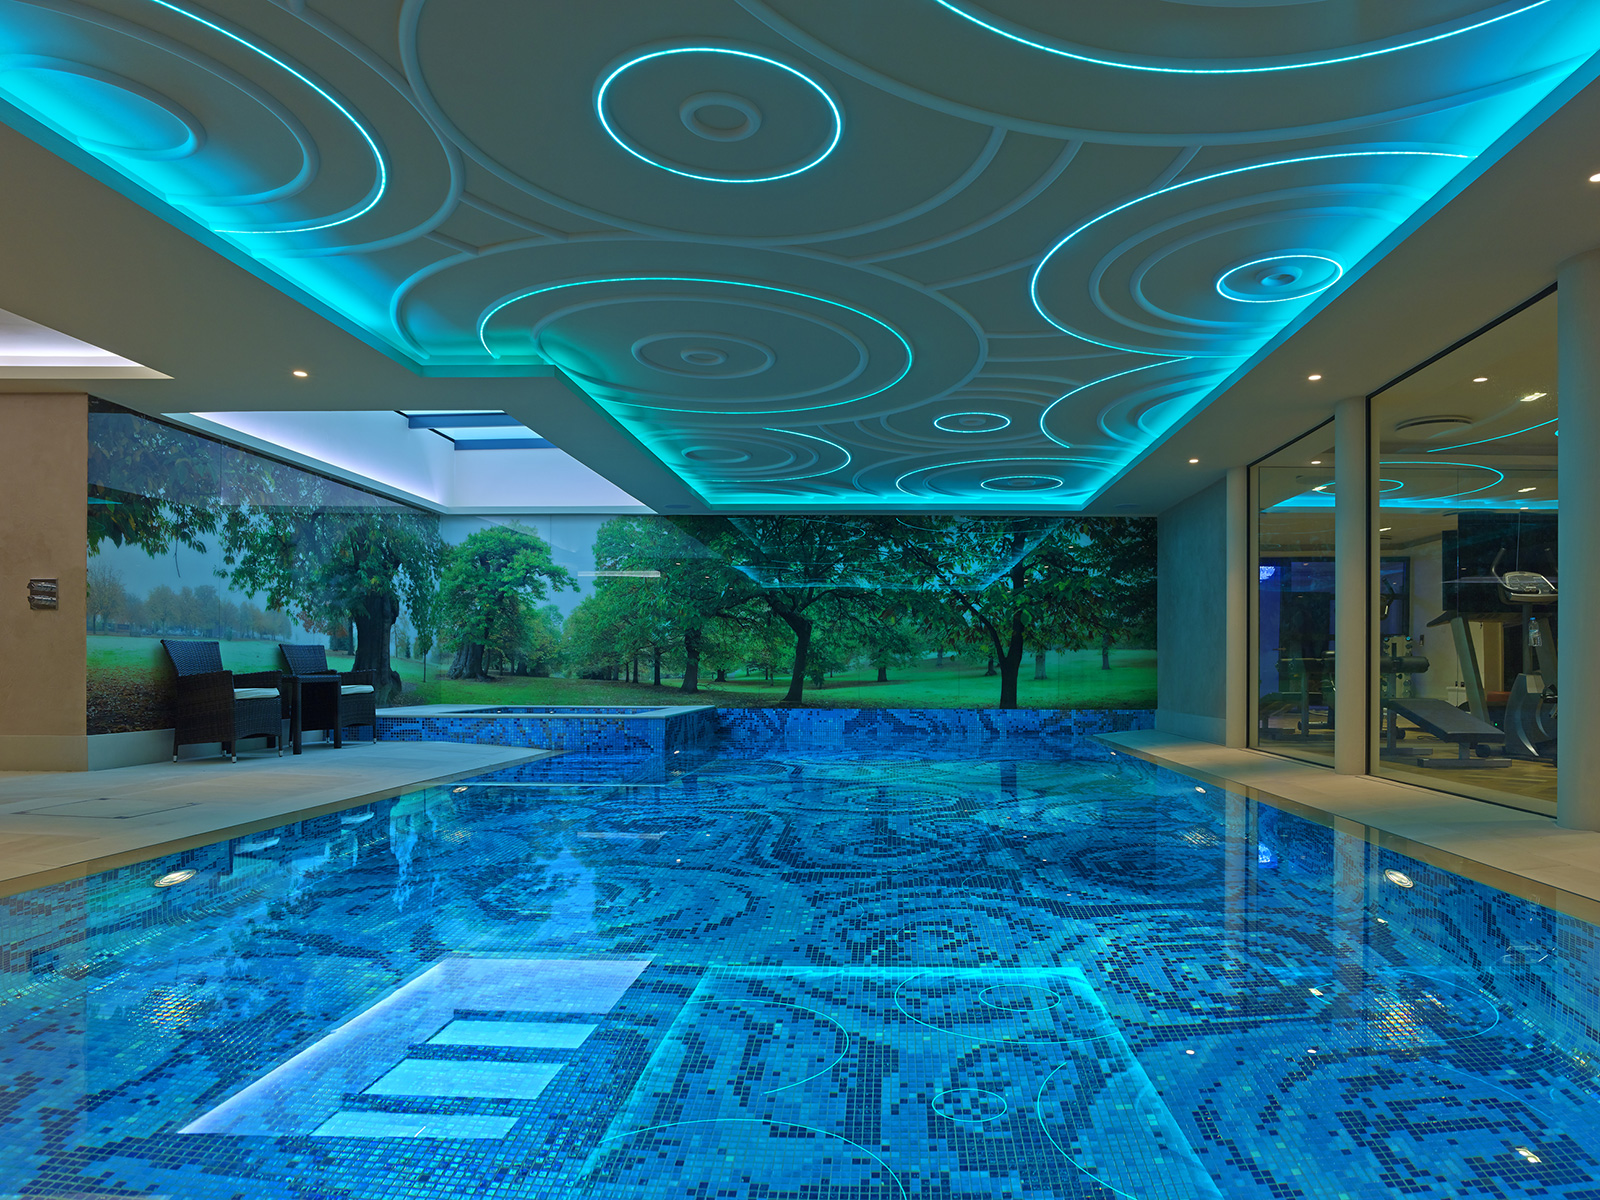 With Ezarri´s mosaic designs, you'll achieve the swimming pool you've always dreamed of